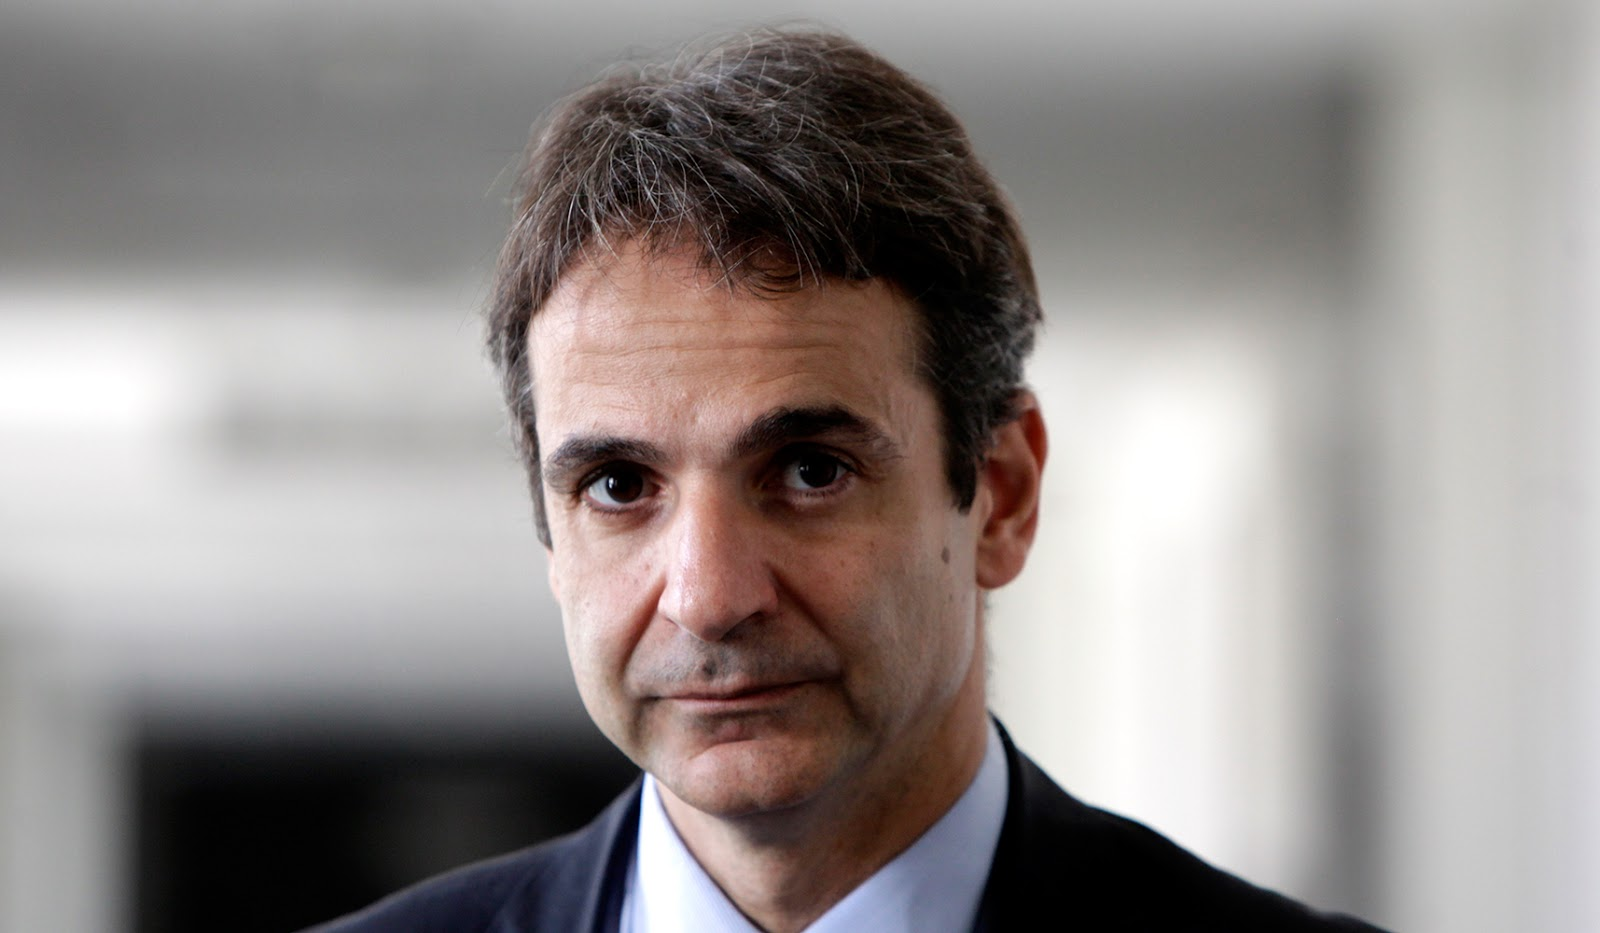 Kyriacos Mitsotakis triumphs in New Democracy leadership election race